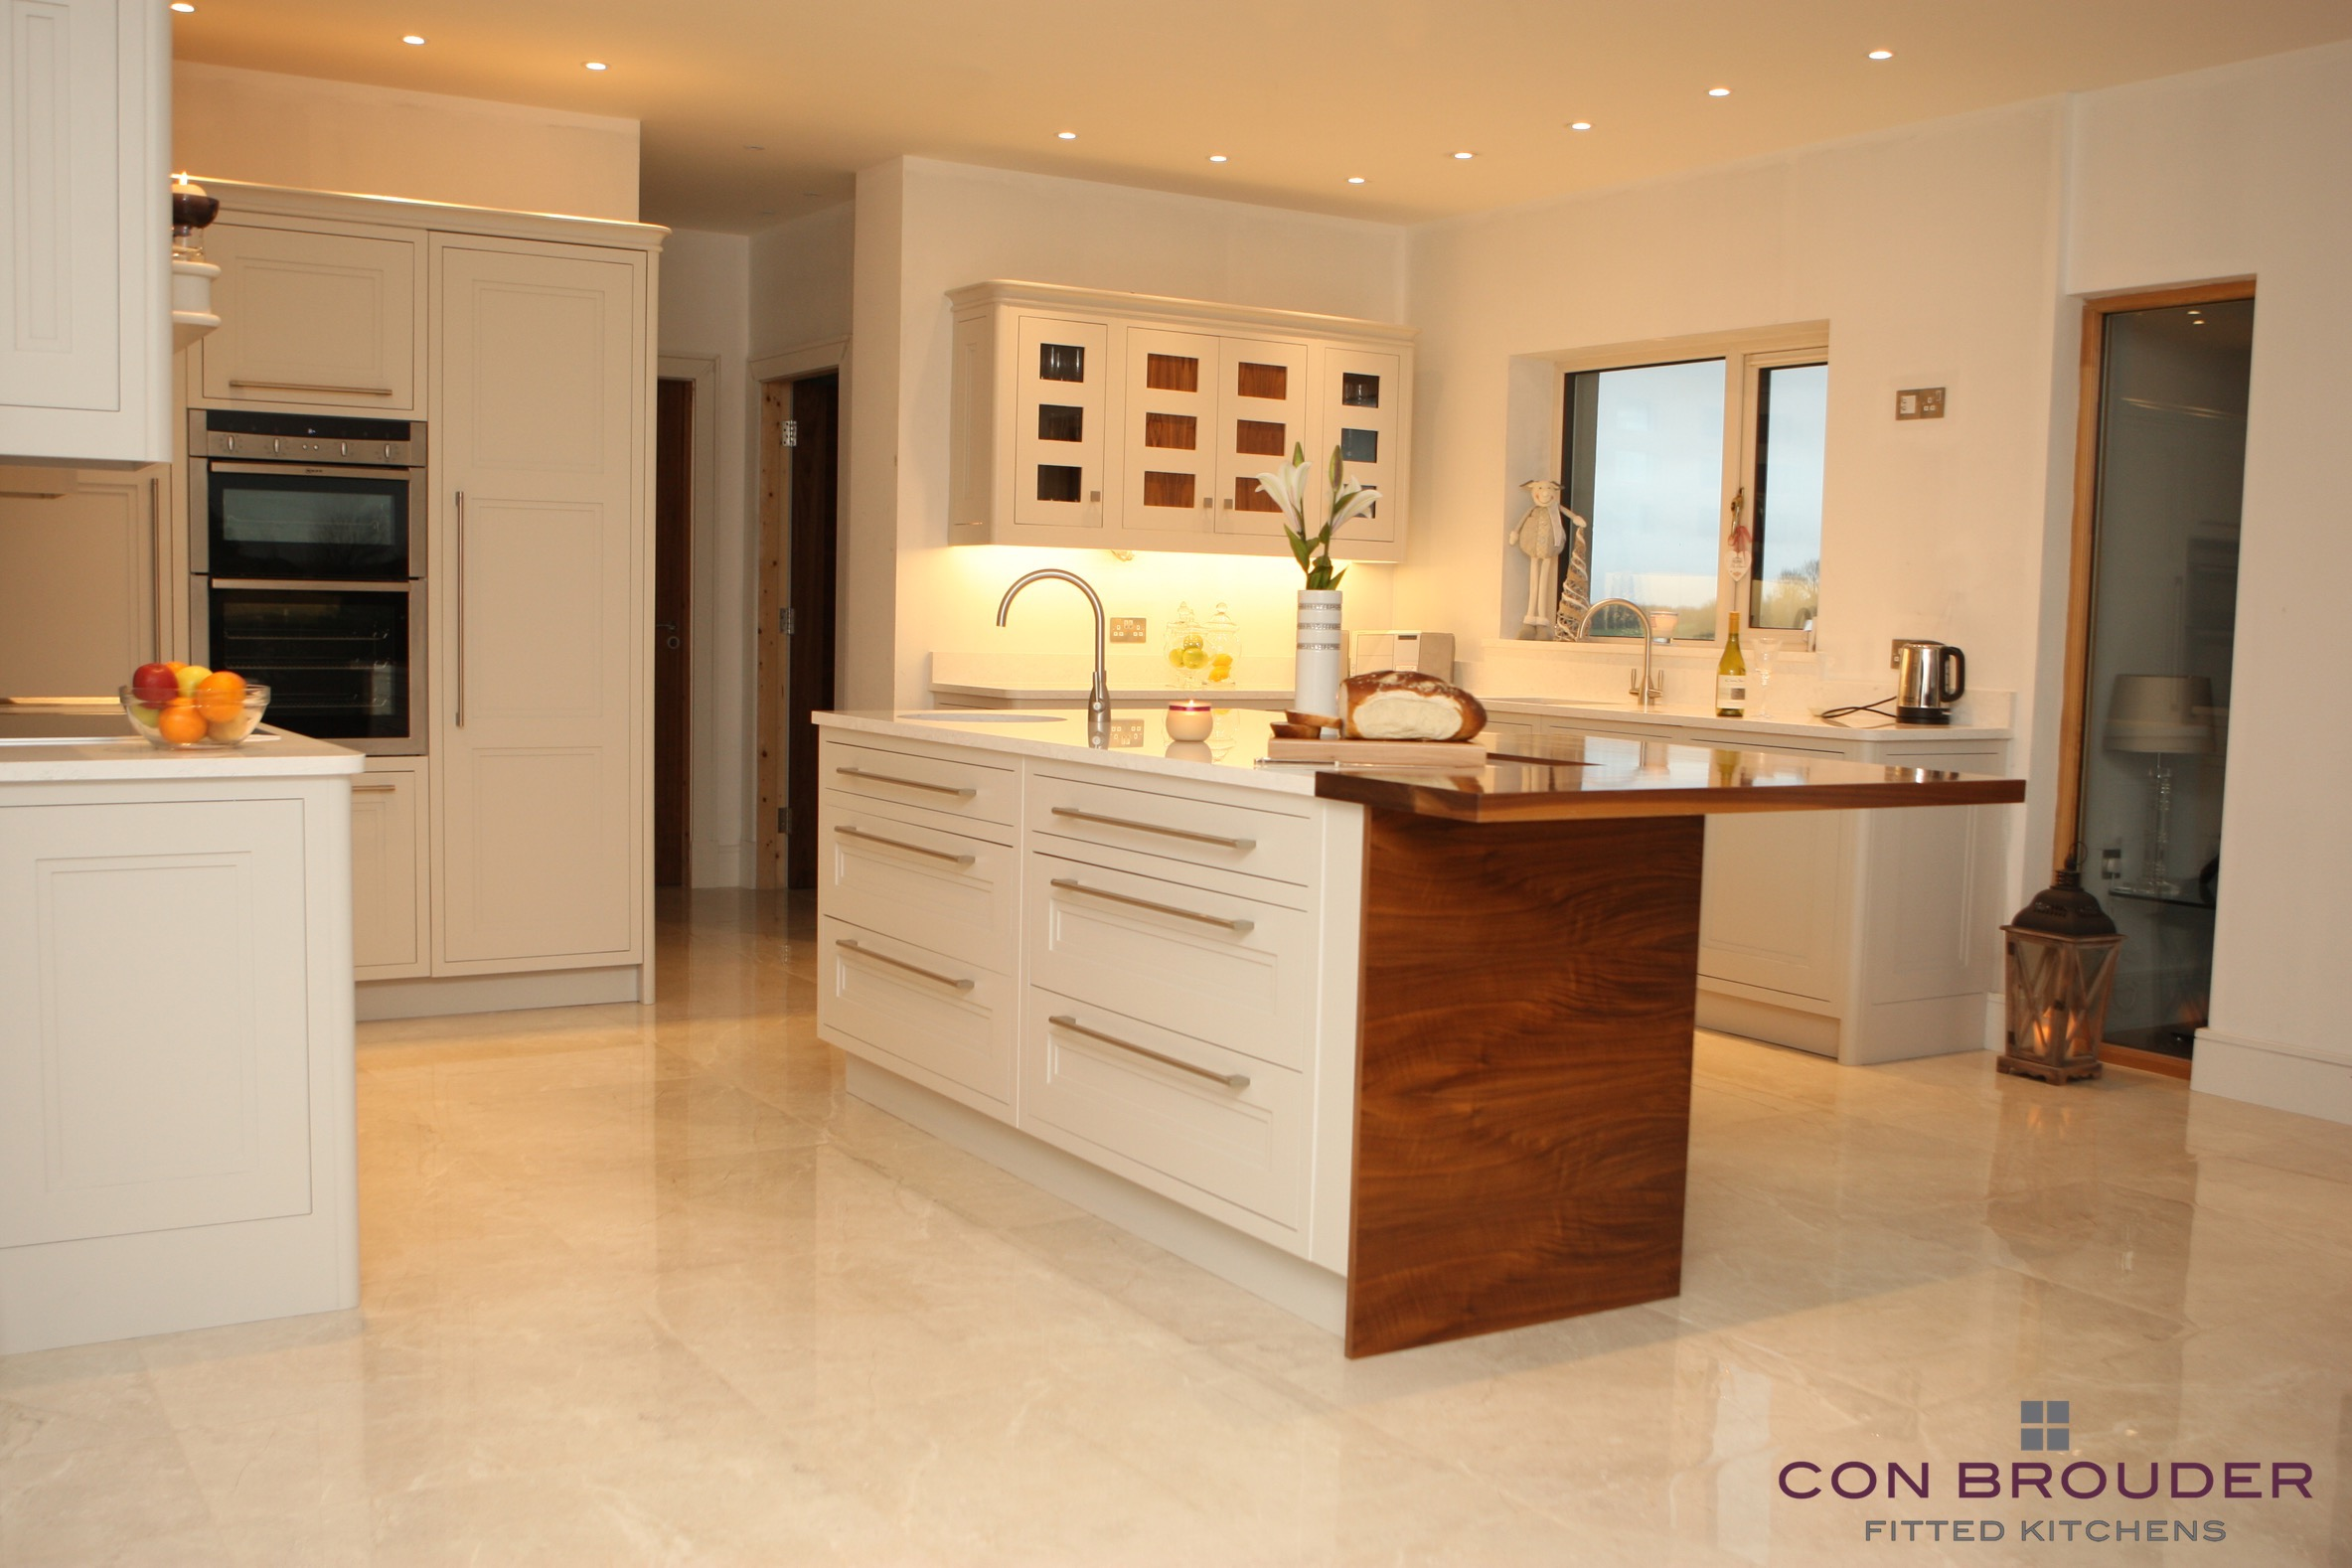 JUNE - SHAKER STYLE - KITCHEN OF THE MONTH